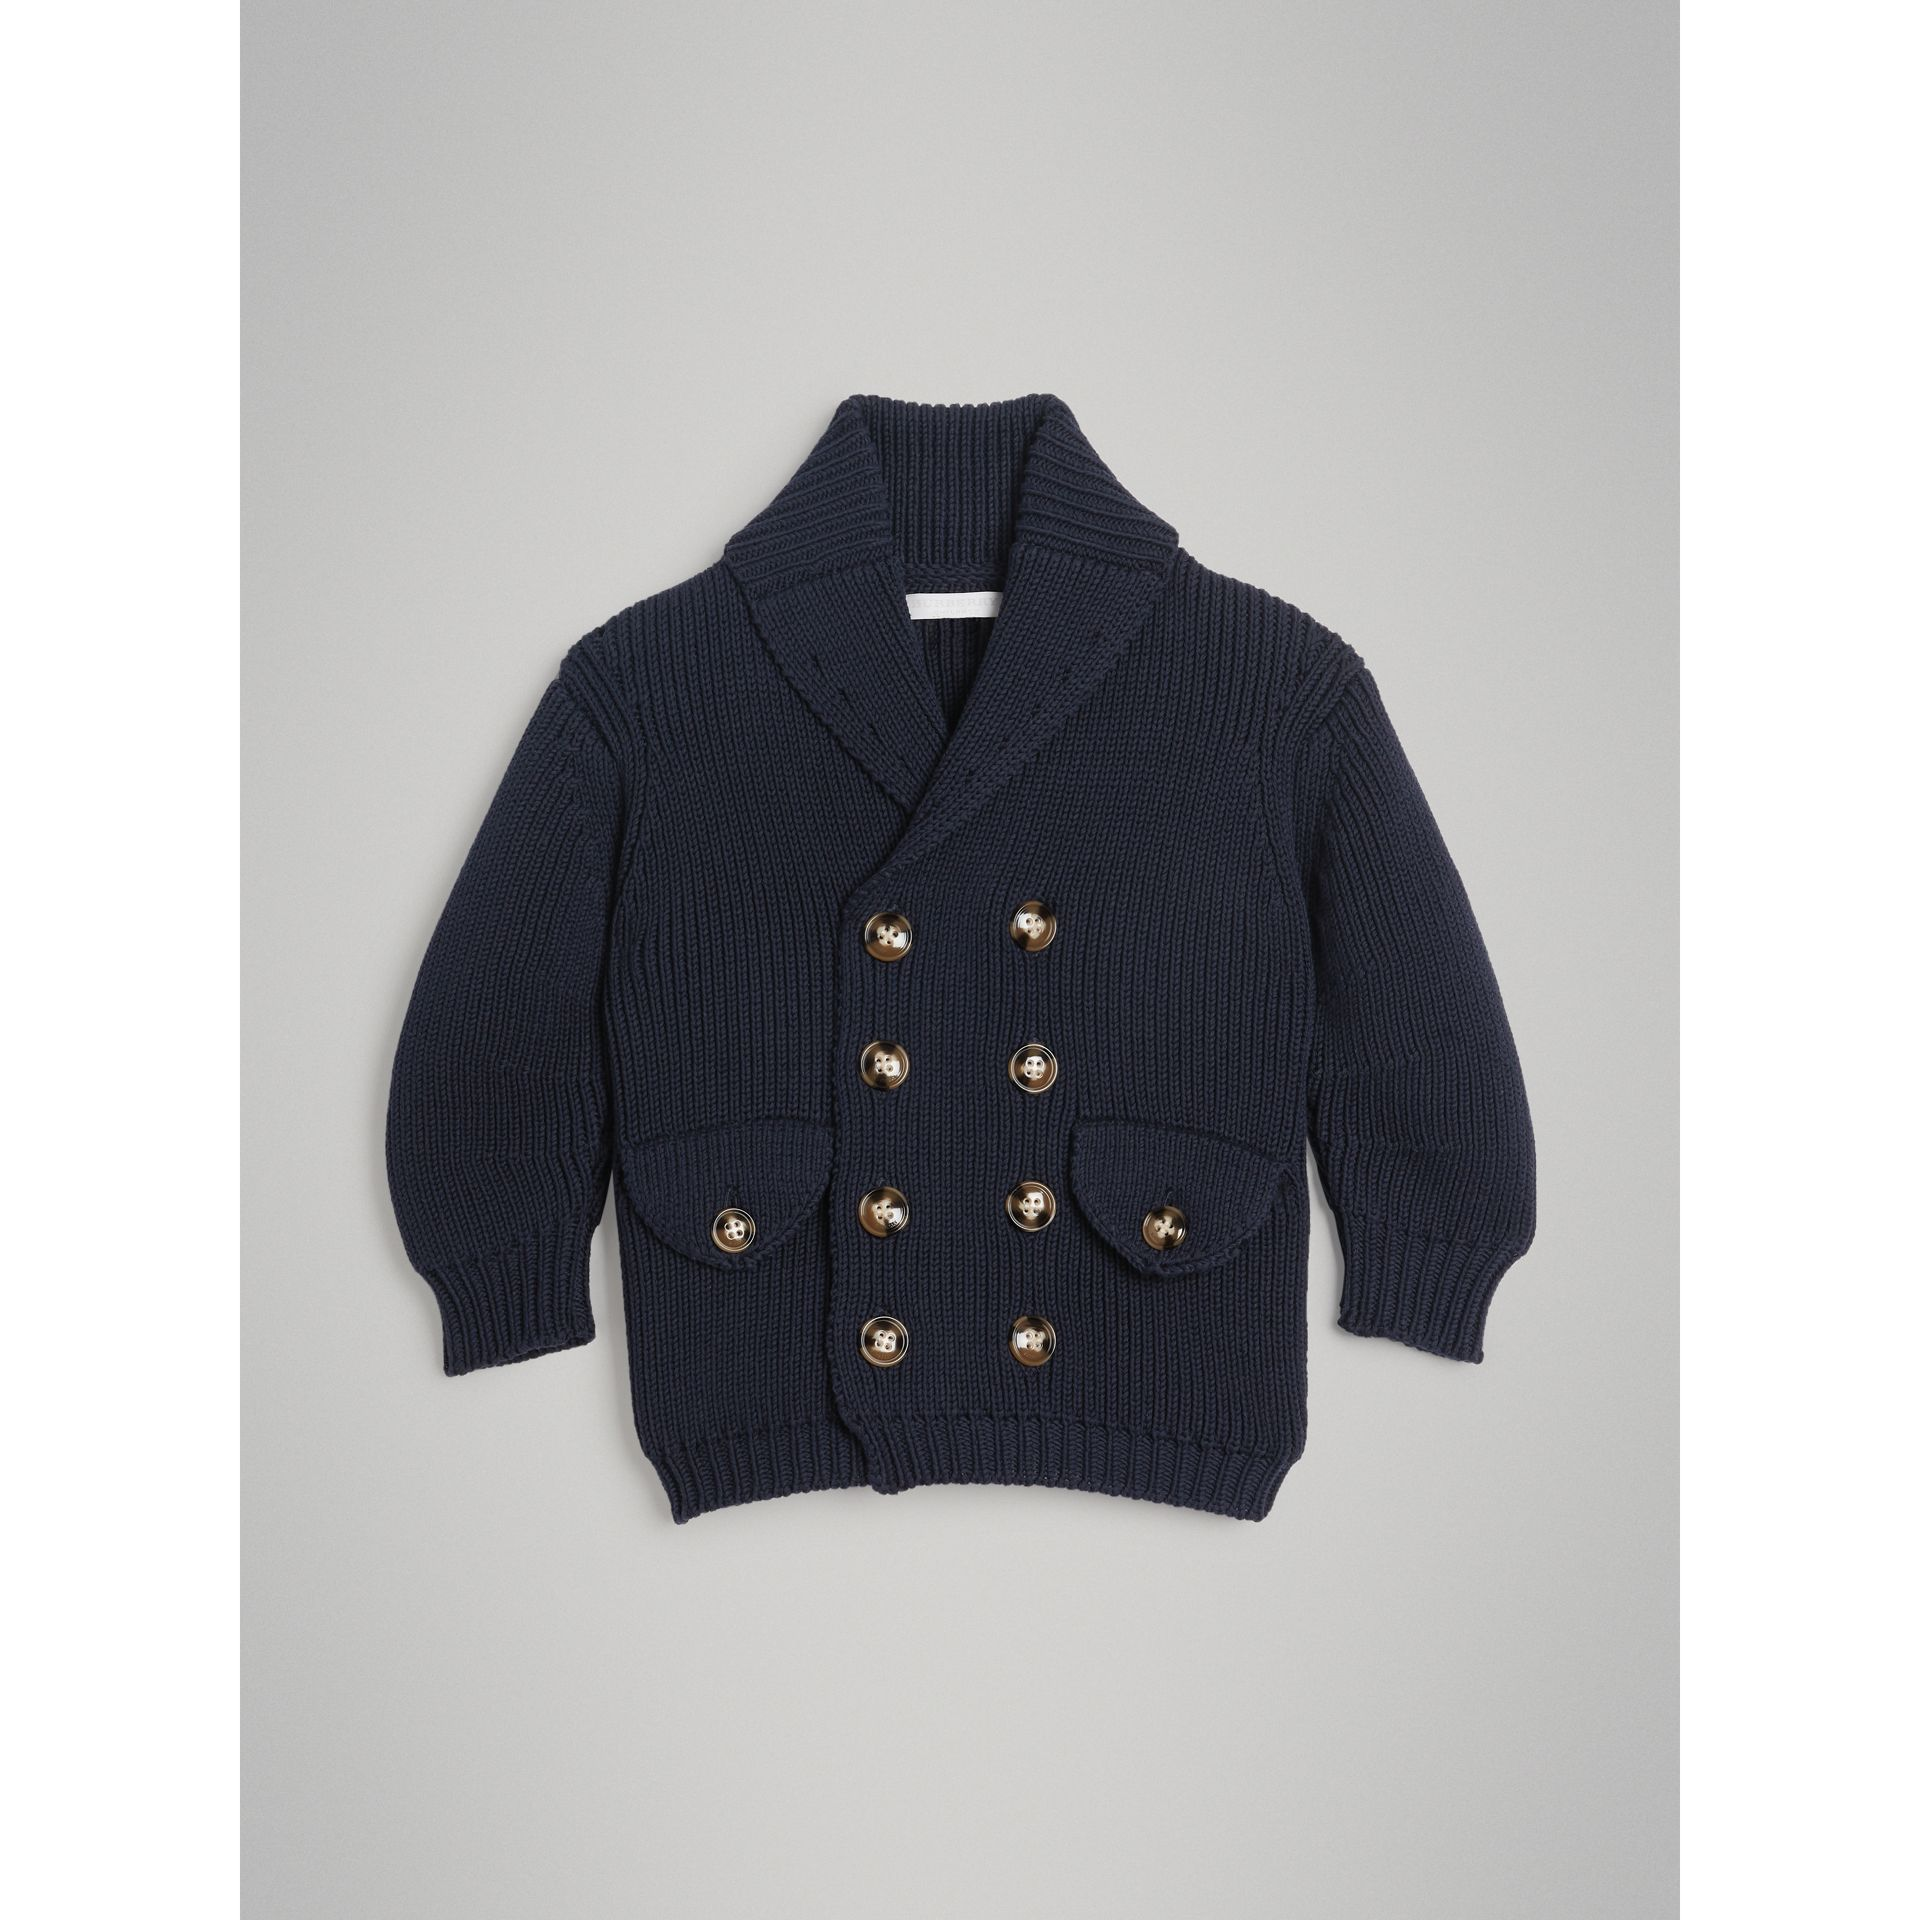 Cotton Knit Pea Coat Cardigan in Navy - Boy | Burberry Australia - gallery image 0